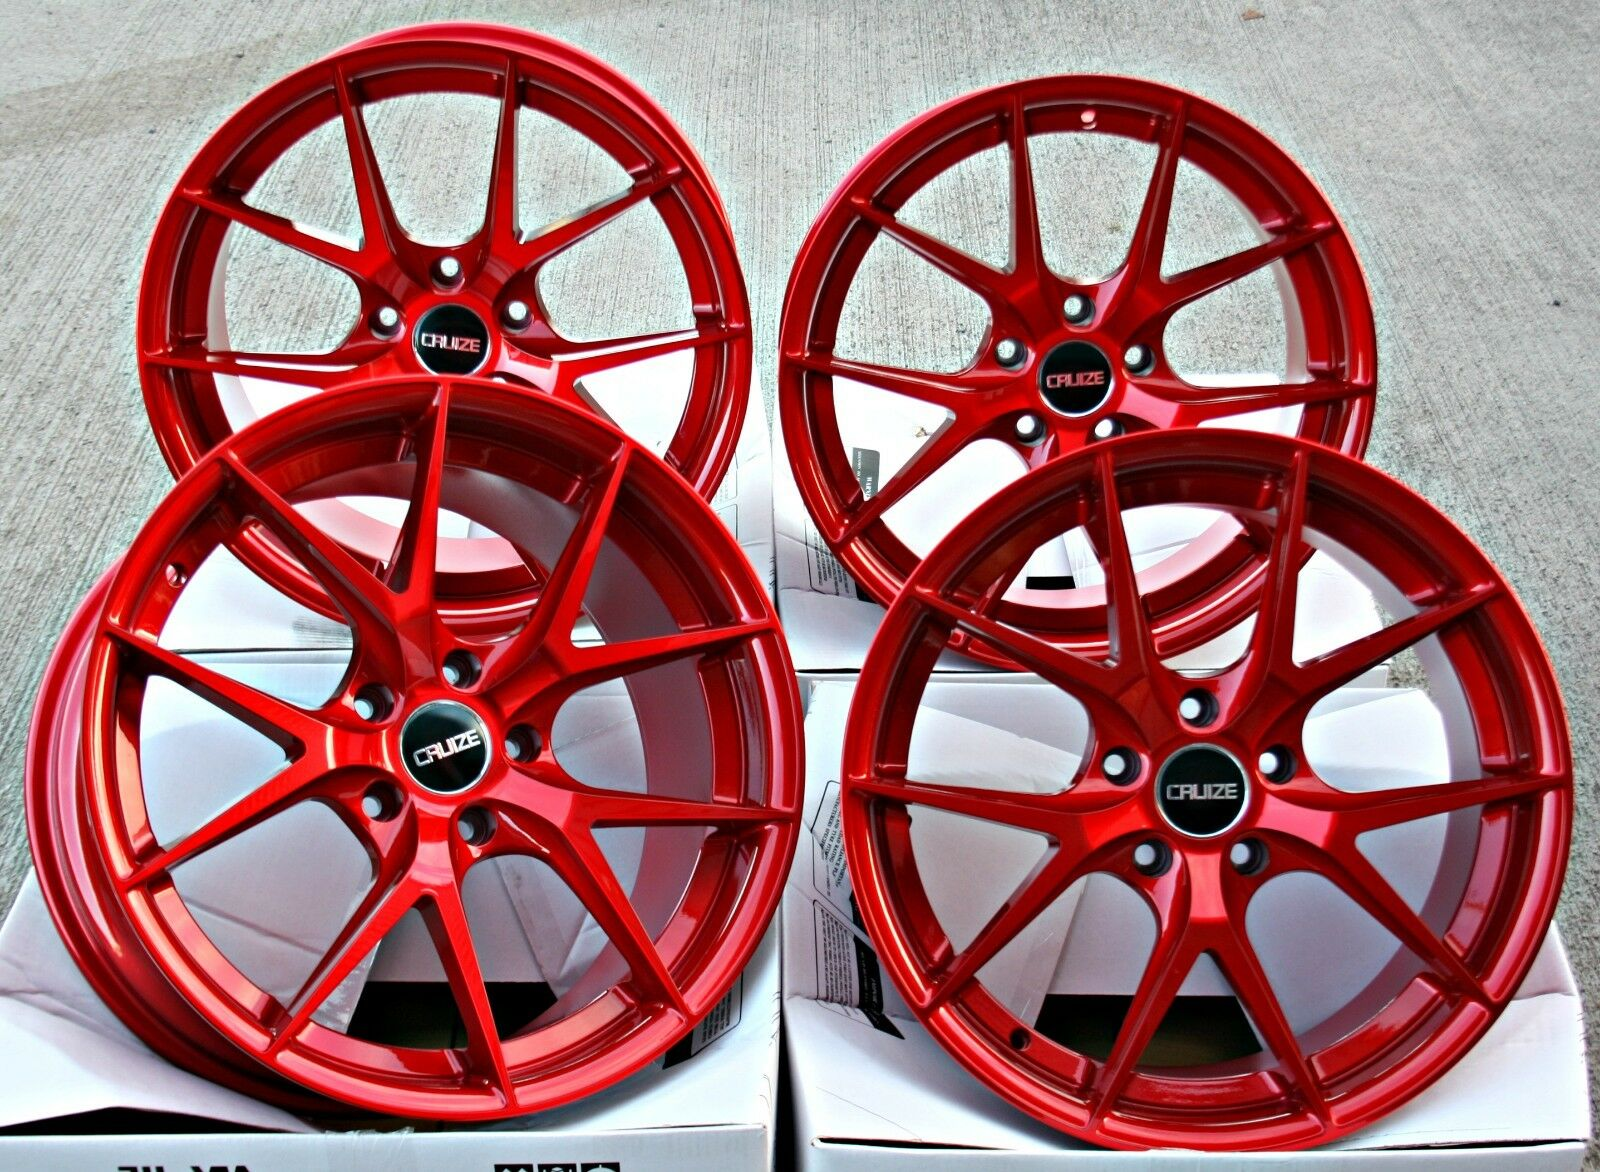 Alloy Wheels 19 Cruize Gto Cr Fit For Bmw 2 Series F22 F23 For Sale Online Ebay